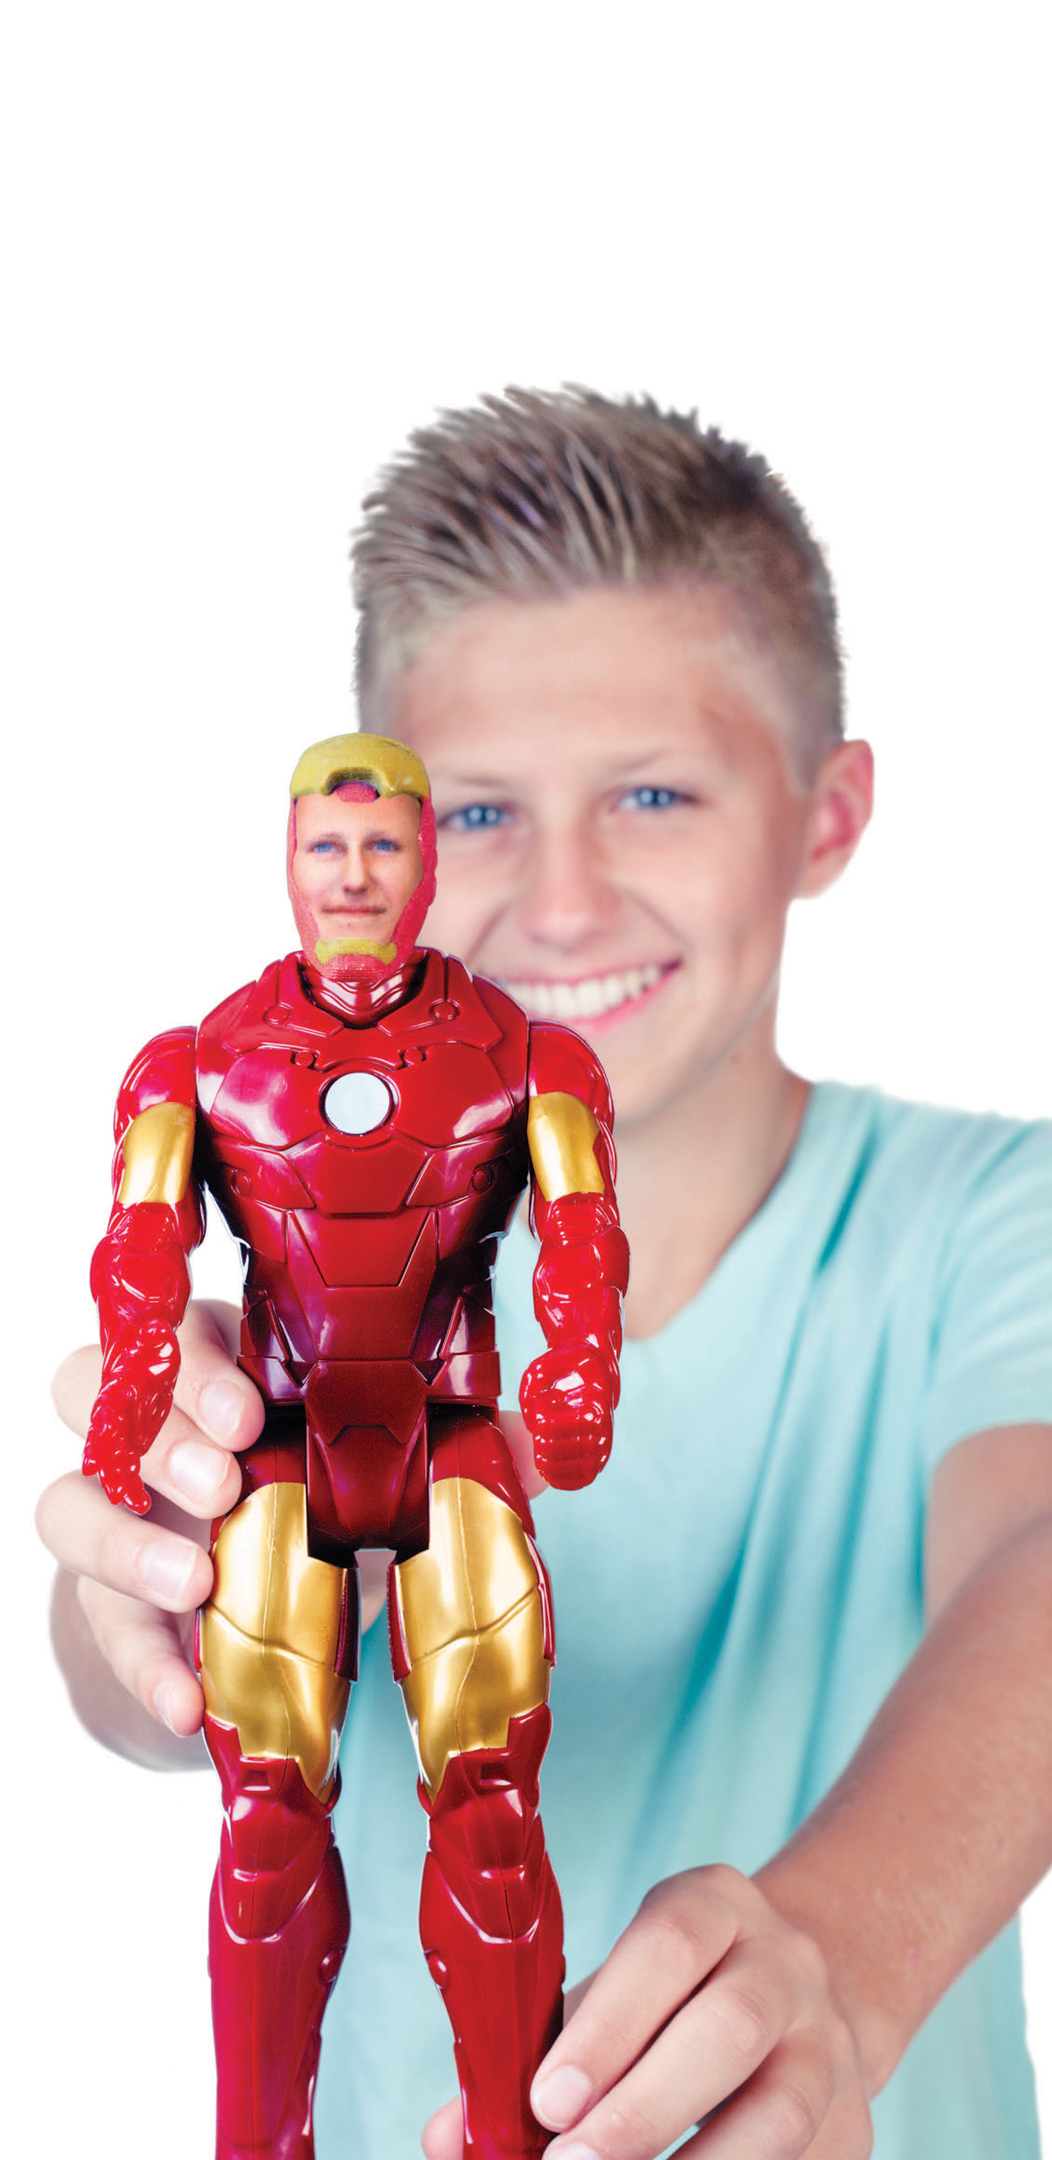 SUPER AWESOME ME 3D printed iron man action figure